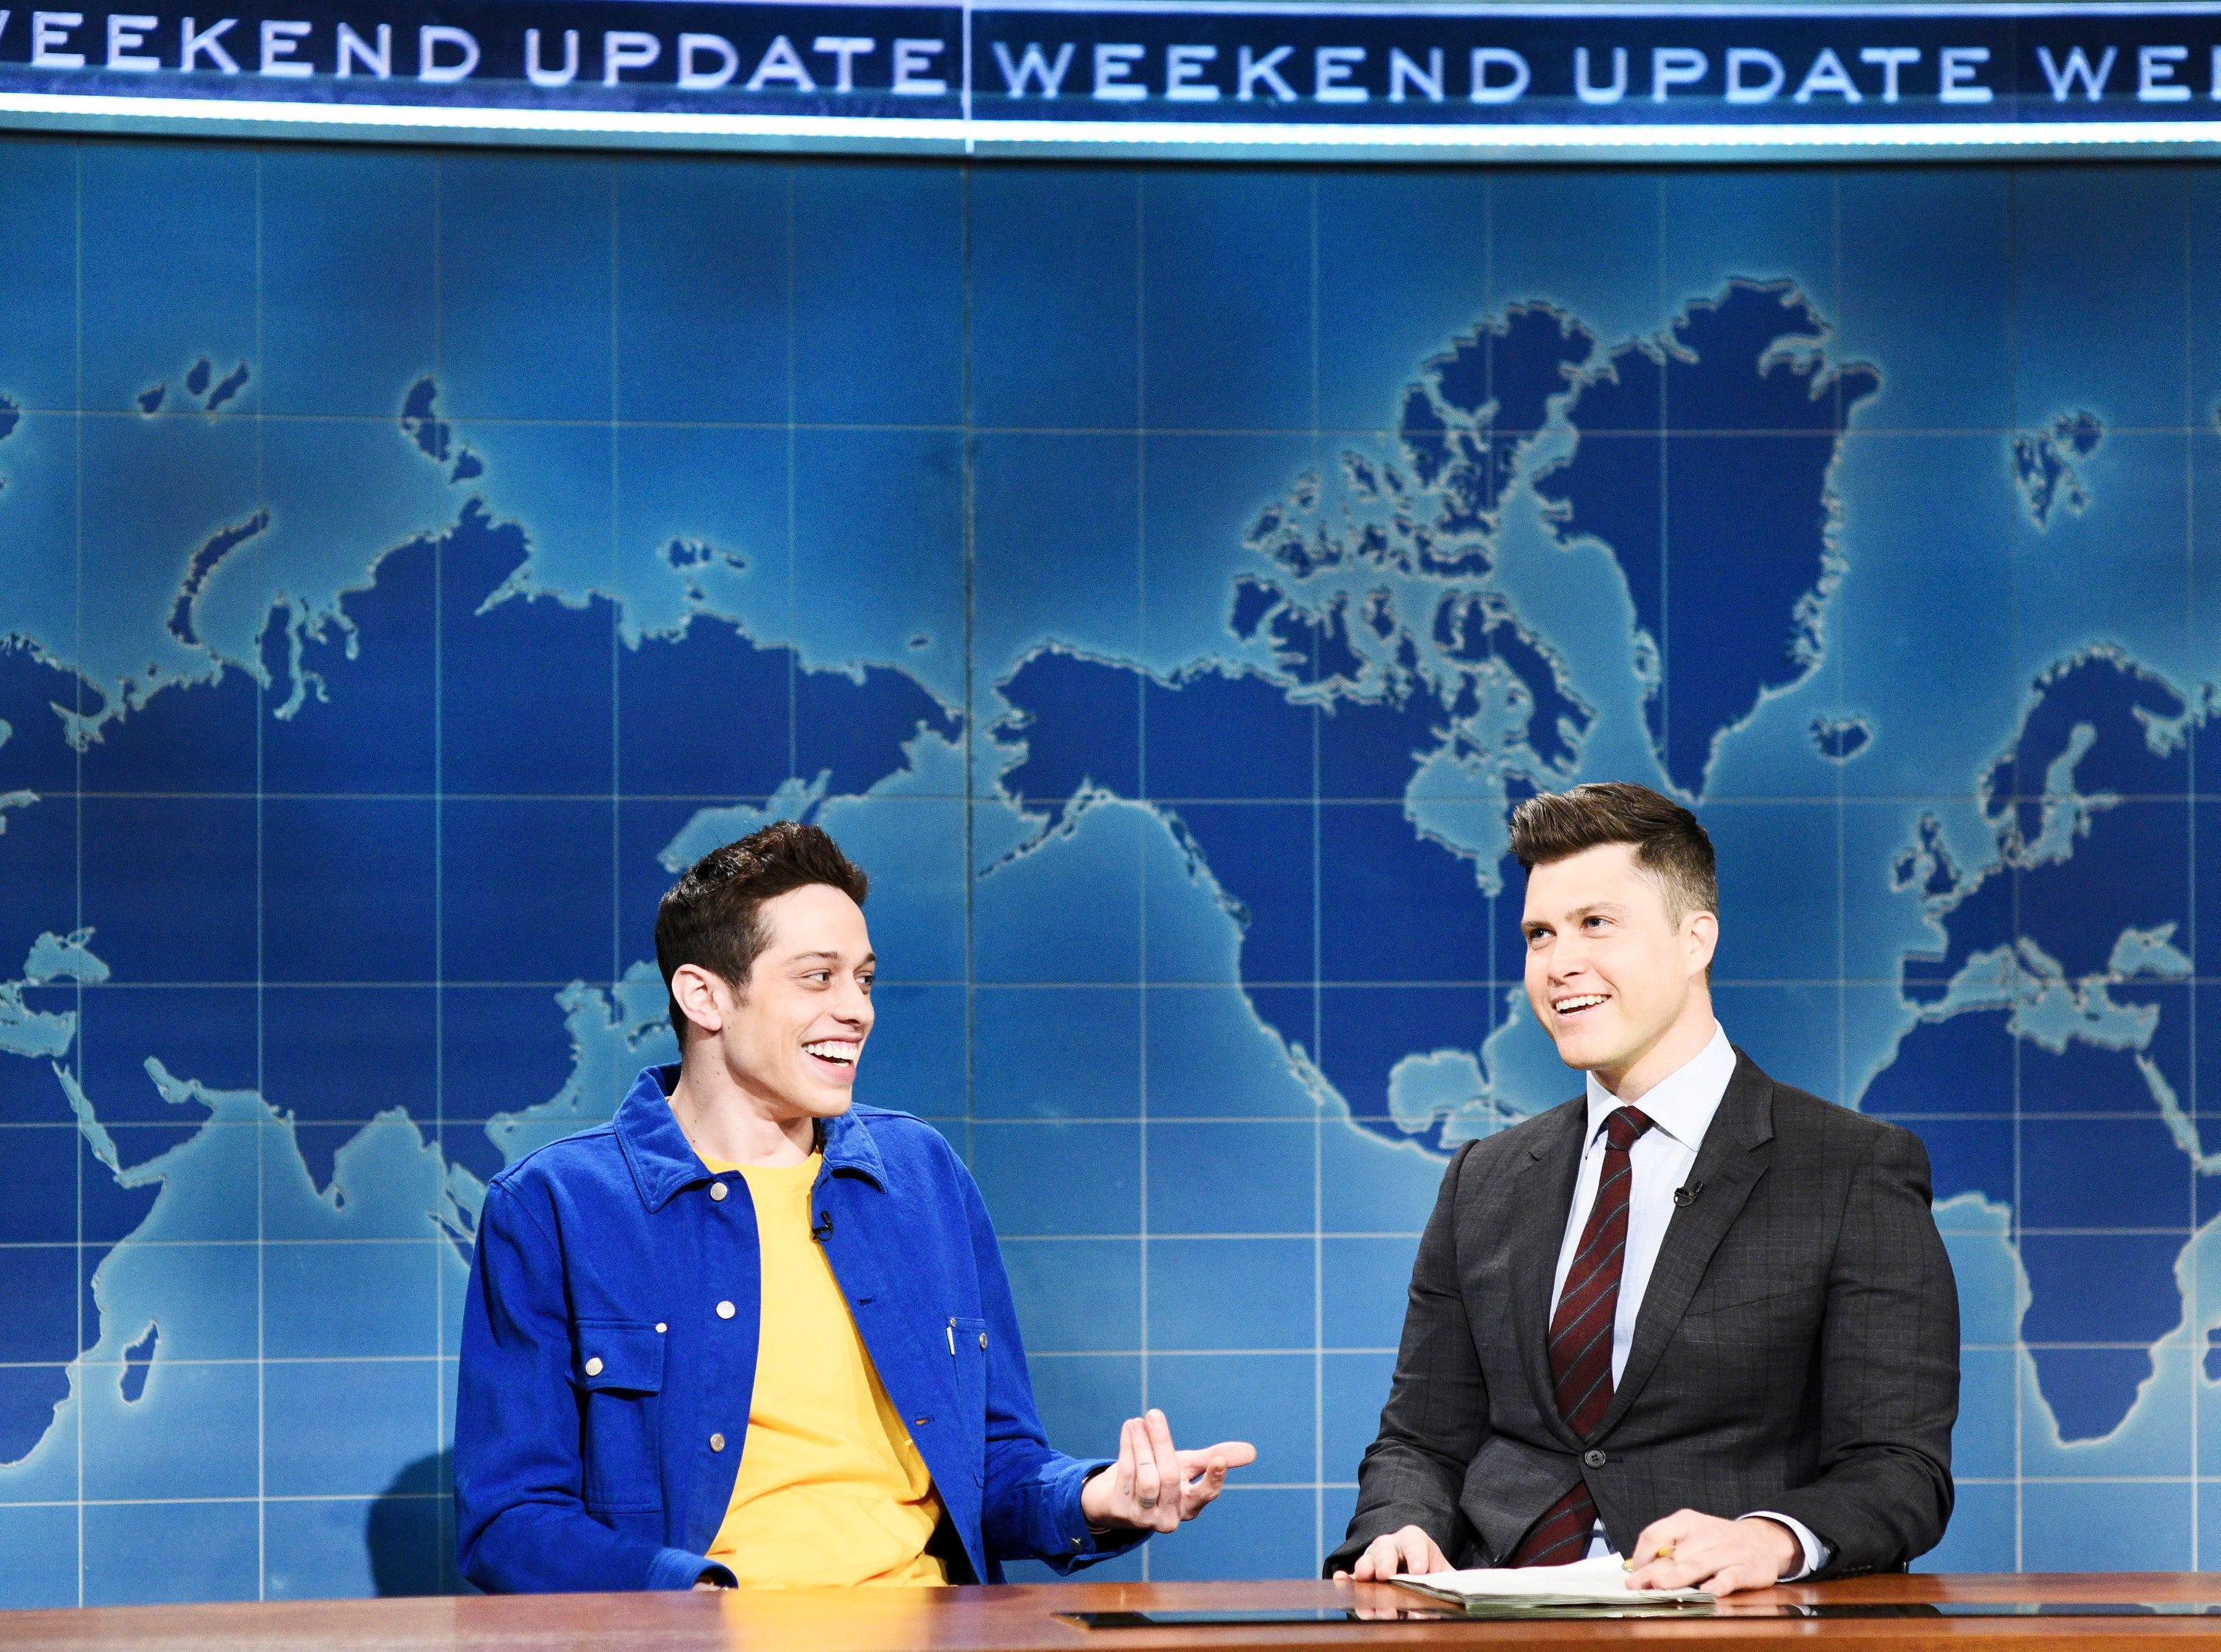 "Pete Davidson also appeared on ""Weekend Update"" with Colin Jost to address rumors about him dating actress Kate Beckinsale and the age difference between them. ""It doesn't really bother us,"" he said. ""But then again, I'm new to this, so if you have questions about relationships with a big age difference, just ask Leonardo DiCaprio, Jason Statham, Michael Douglas, Richard Gere ..."" and on and on, including three references to Larry King."